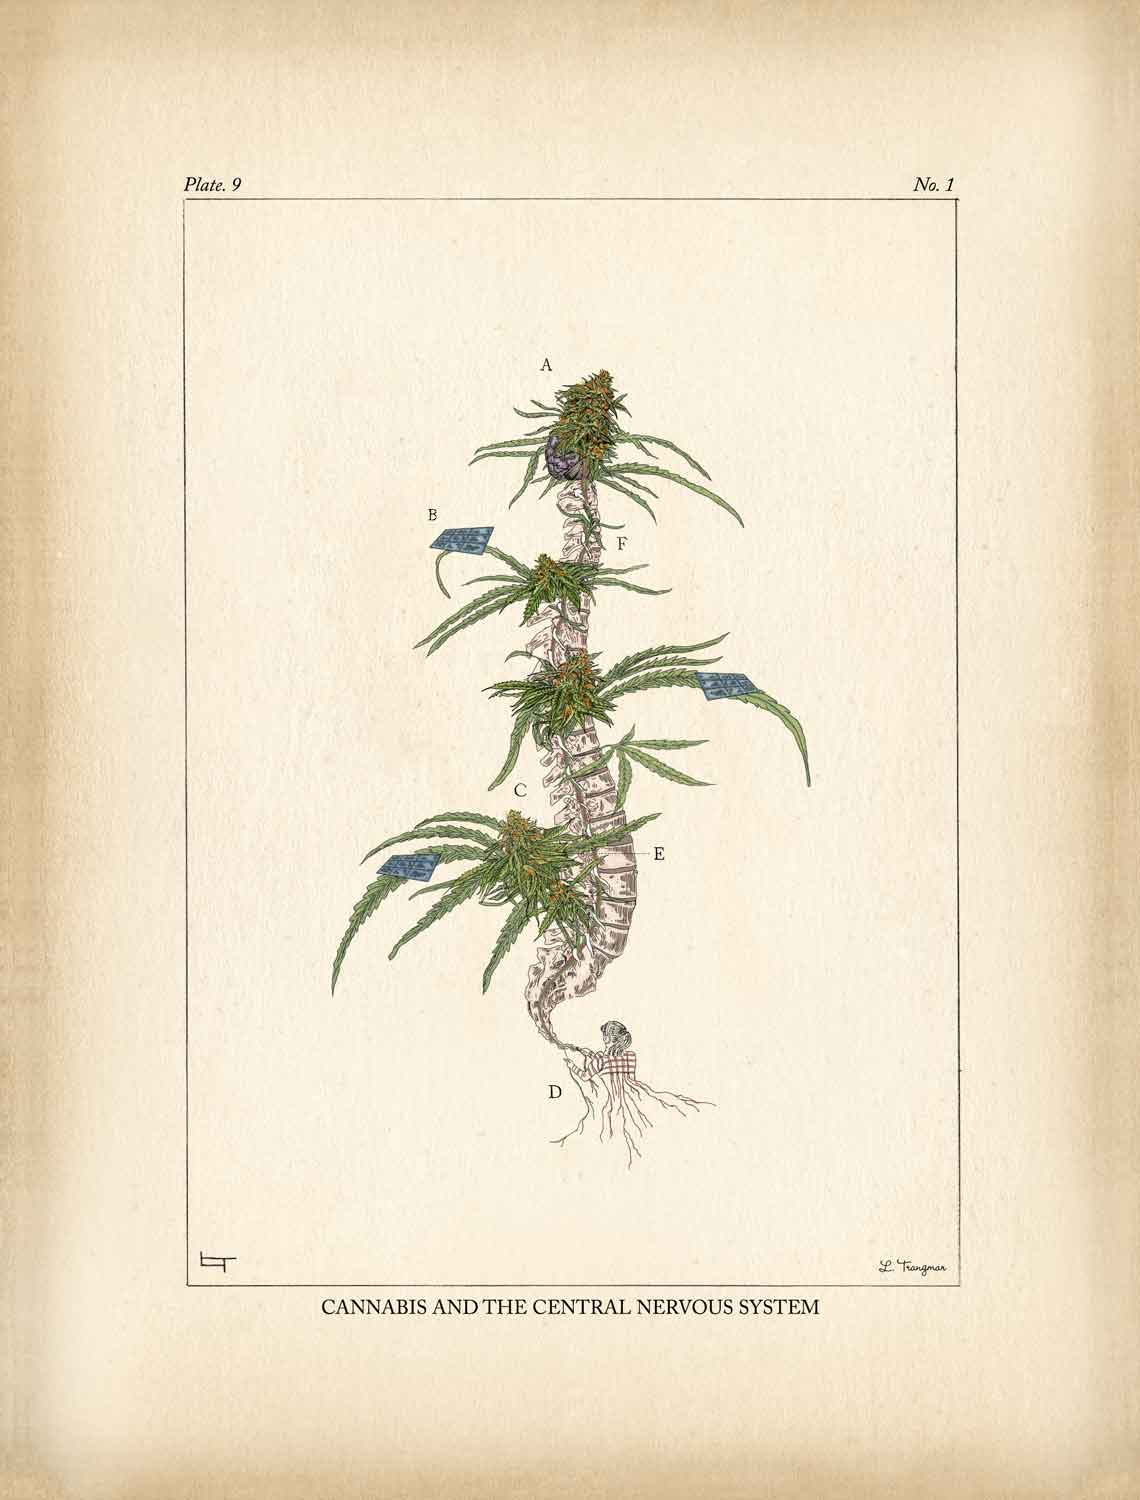 Cannabis and the Central Nervous System